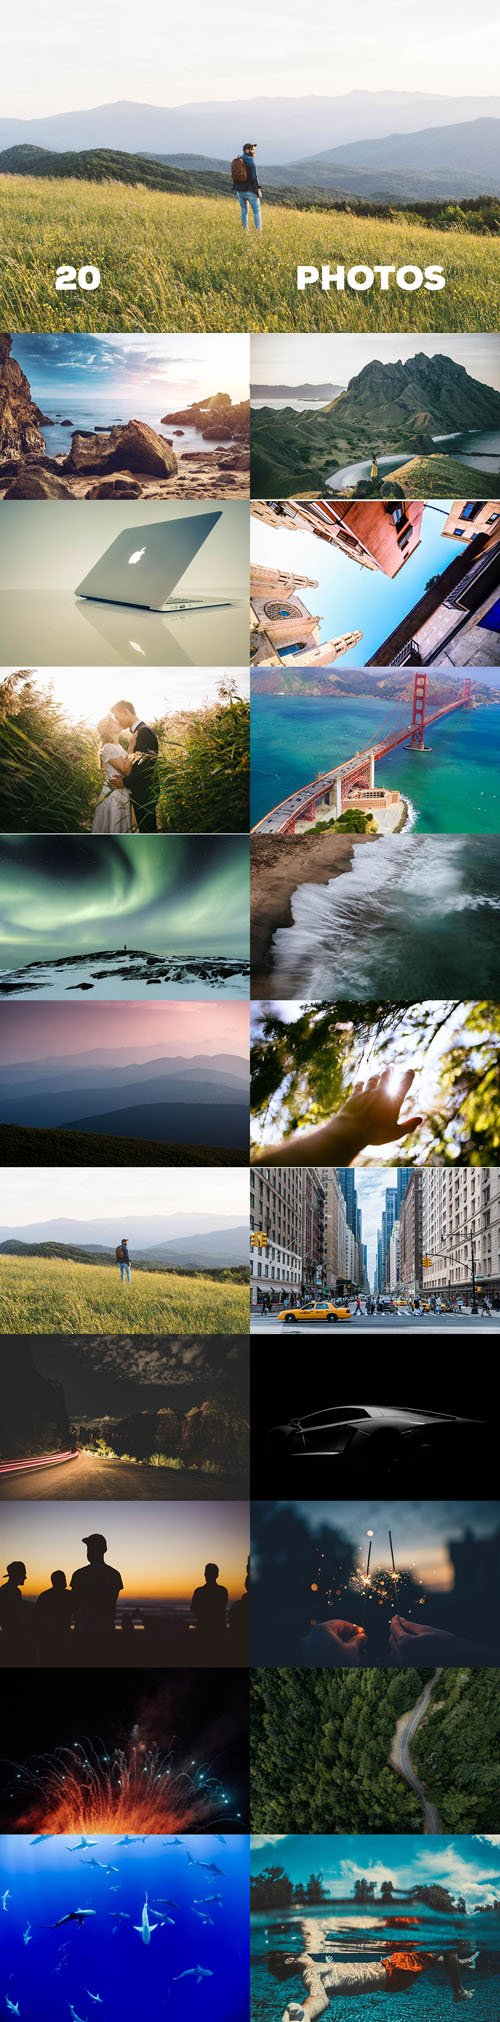 20 Amazing Photos & Backgrounds 2